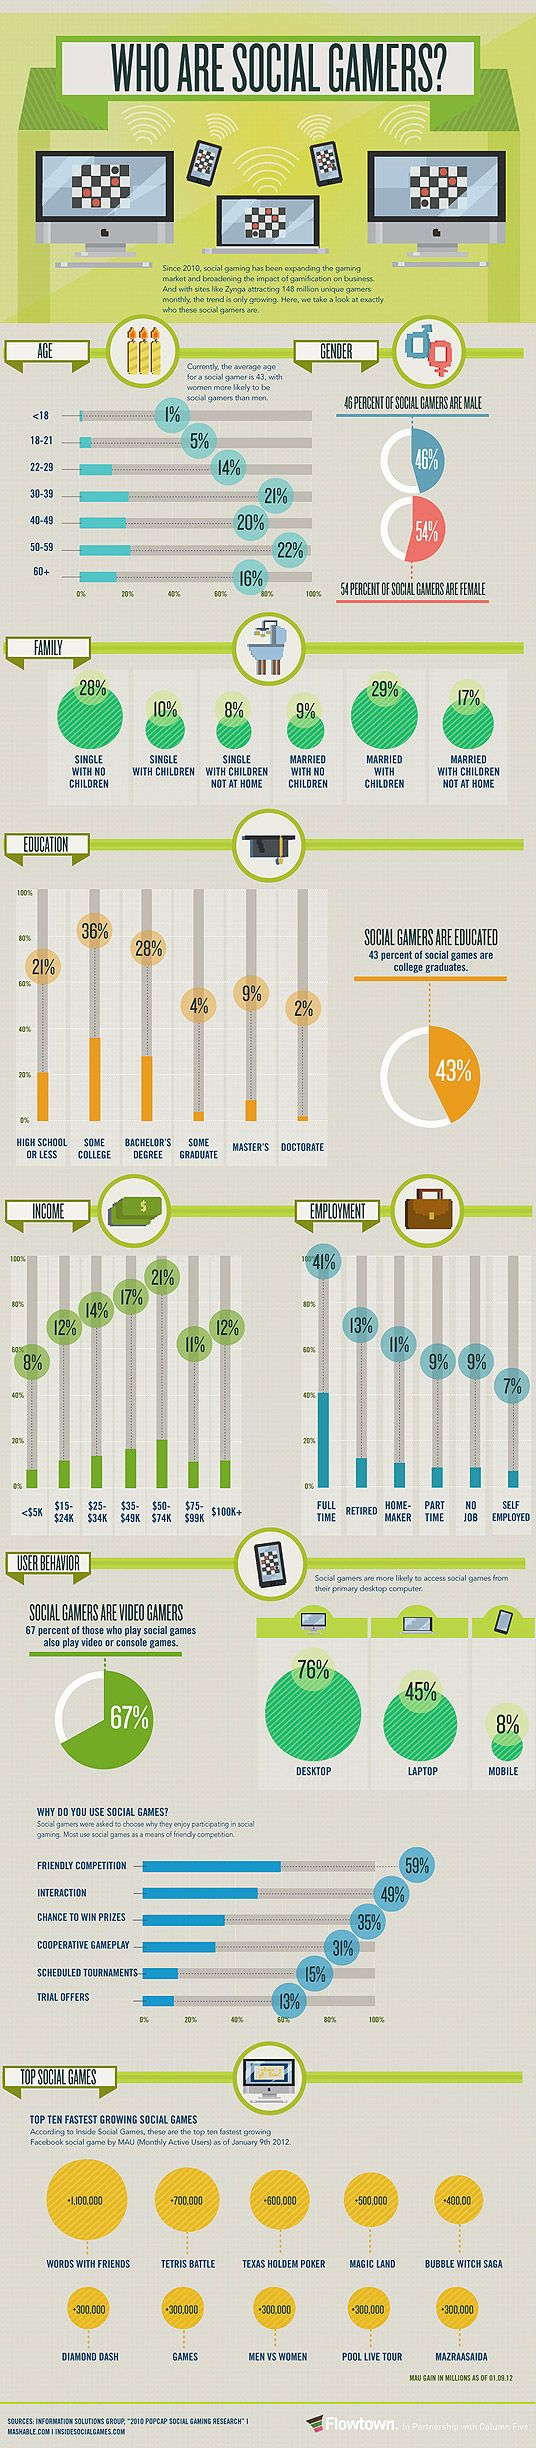 Who are social gamers - Find out in this insightful infographic